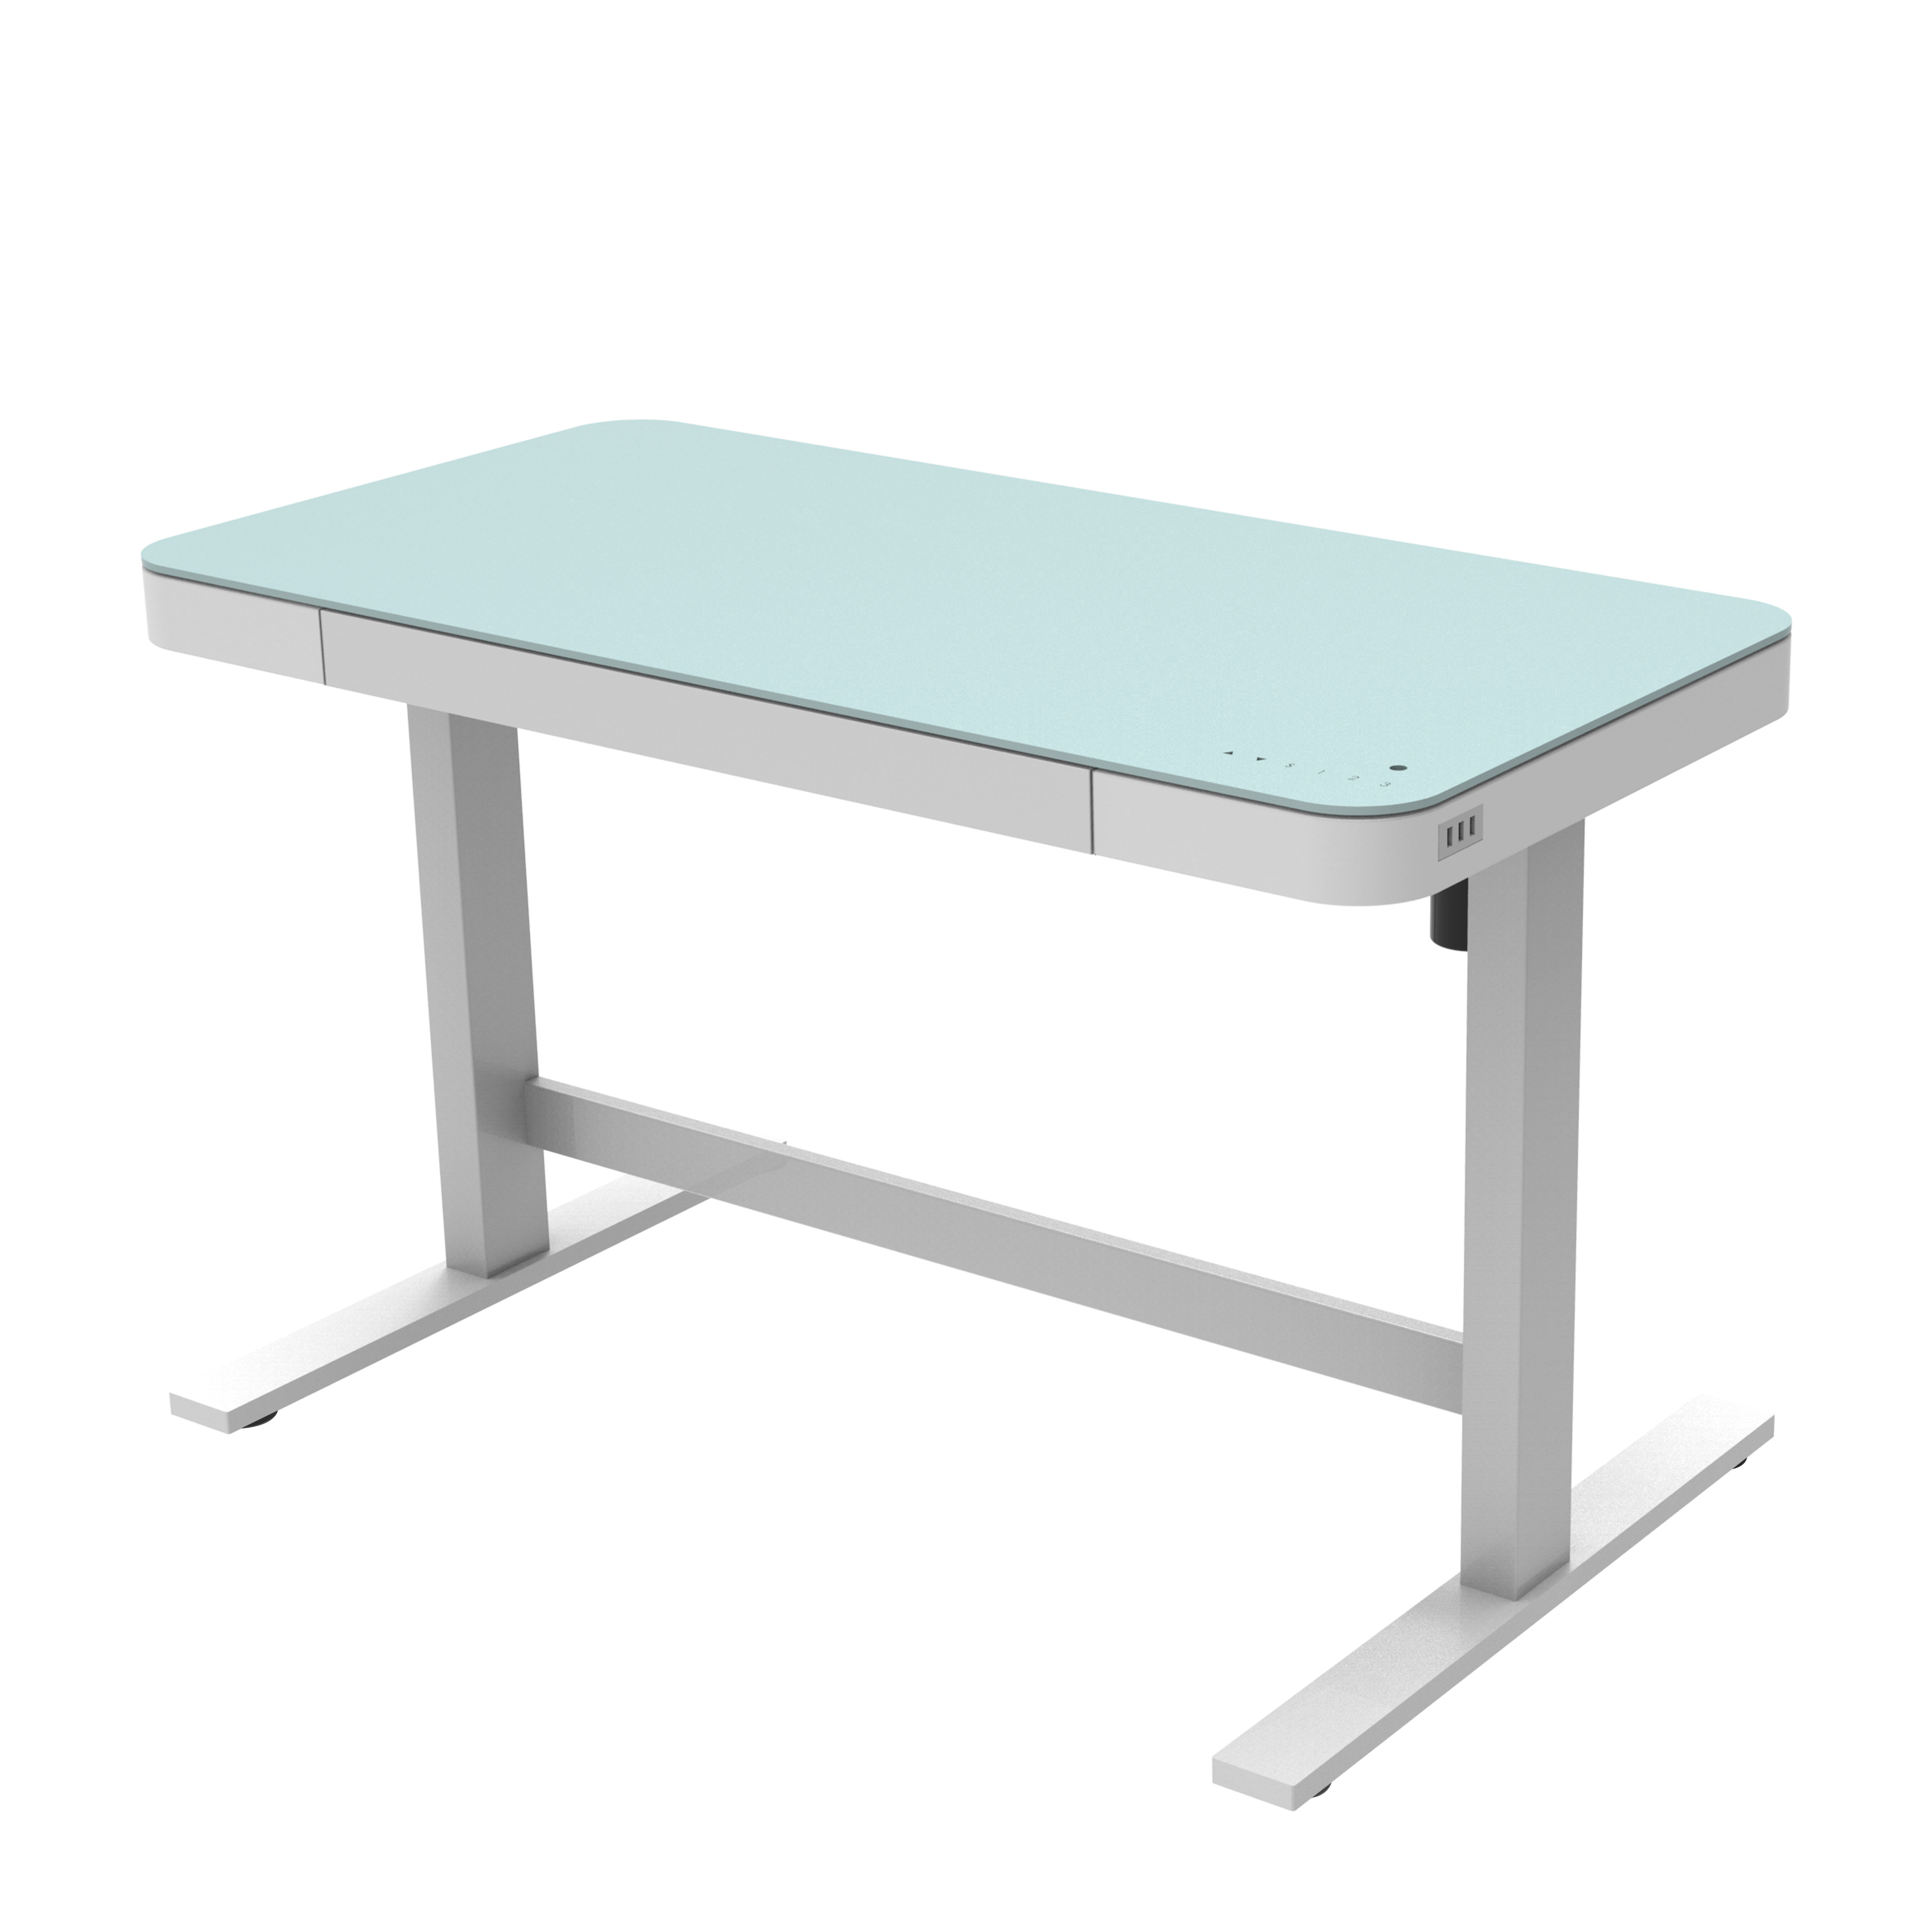 Modern Home Office Work at Home Glass Top Sit Standing Height Adjustable Electric Table Desk for Kids Children